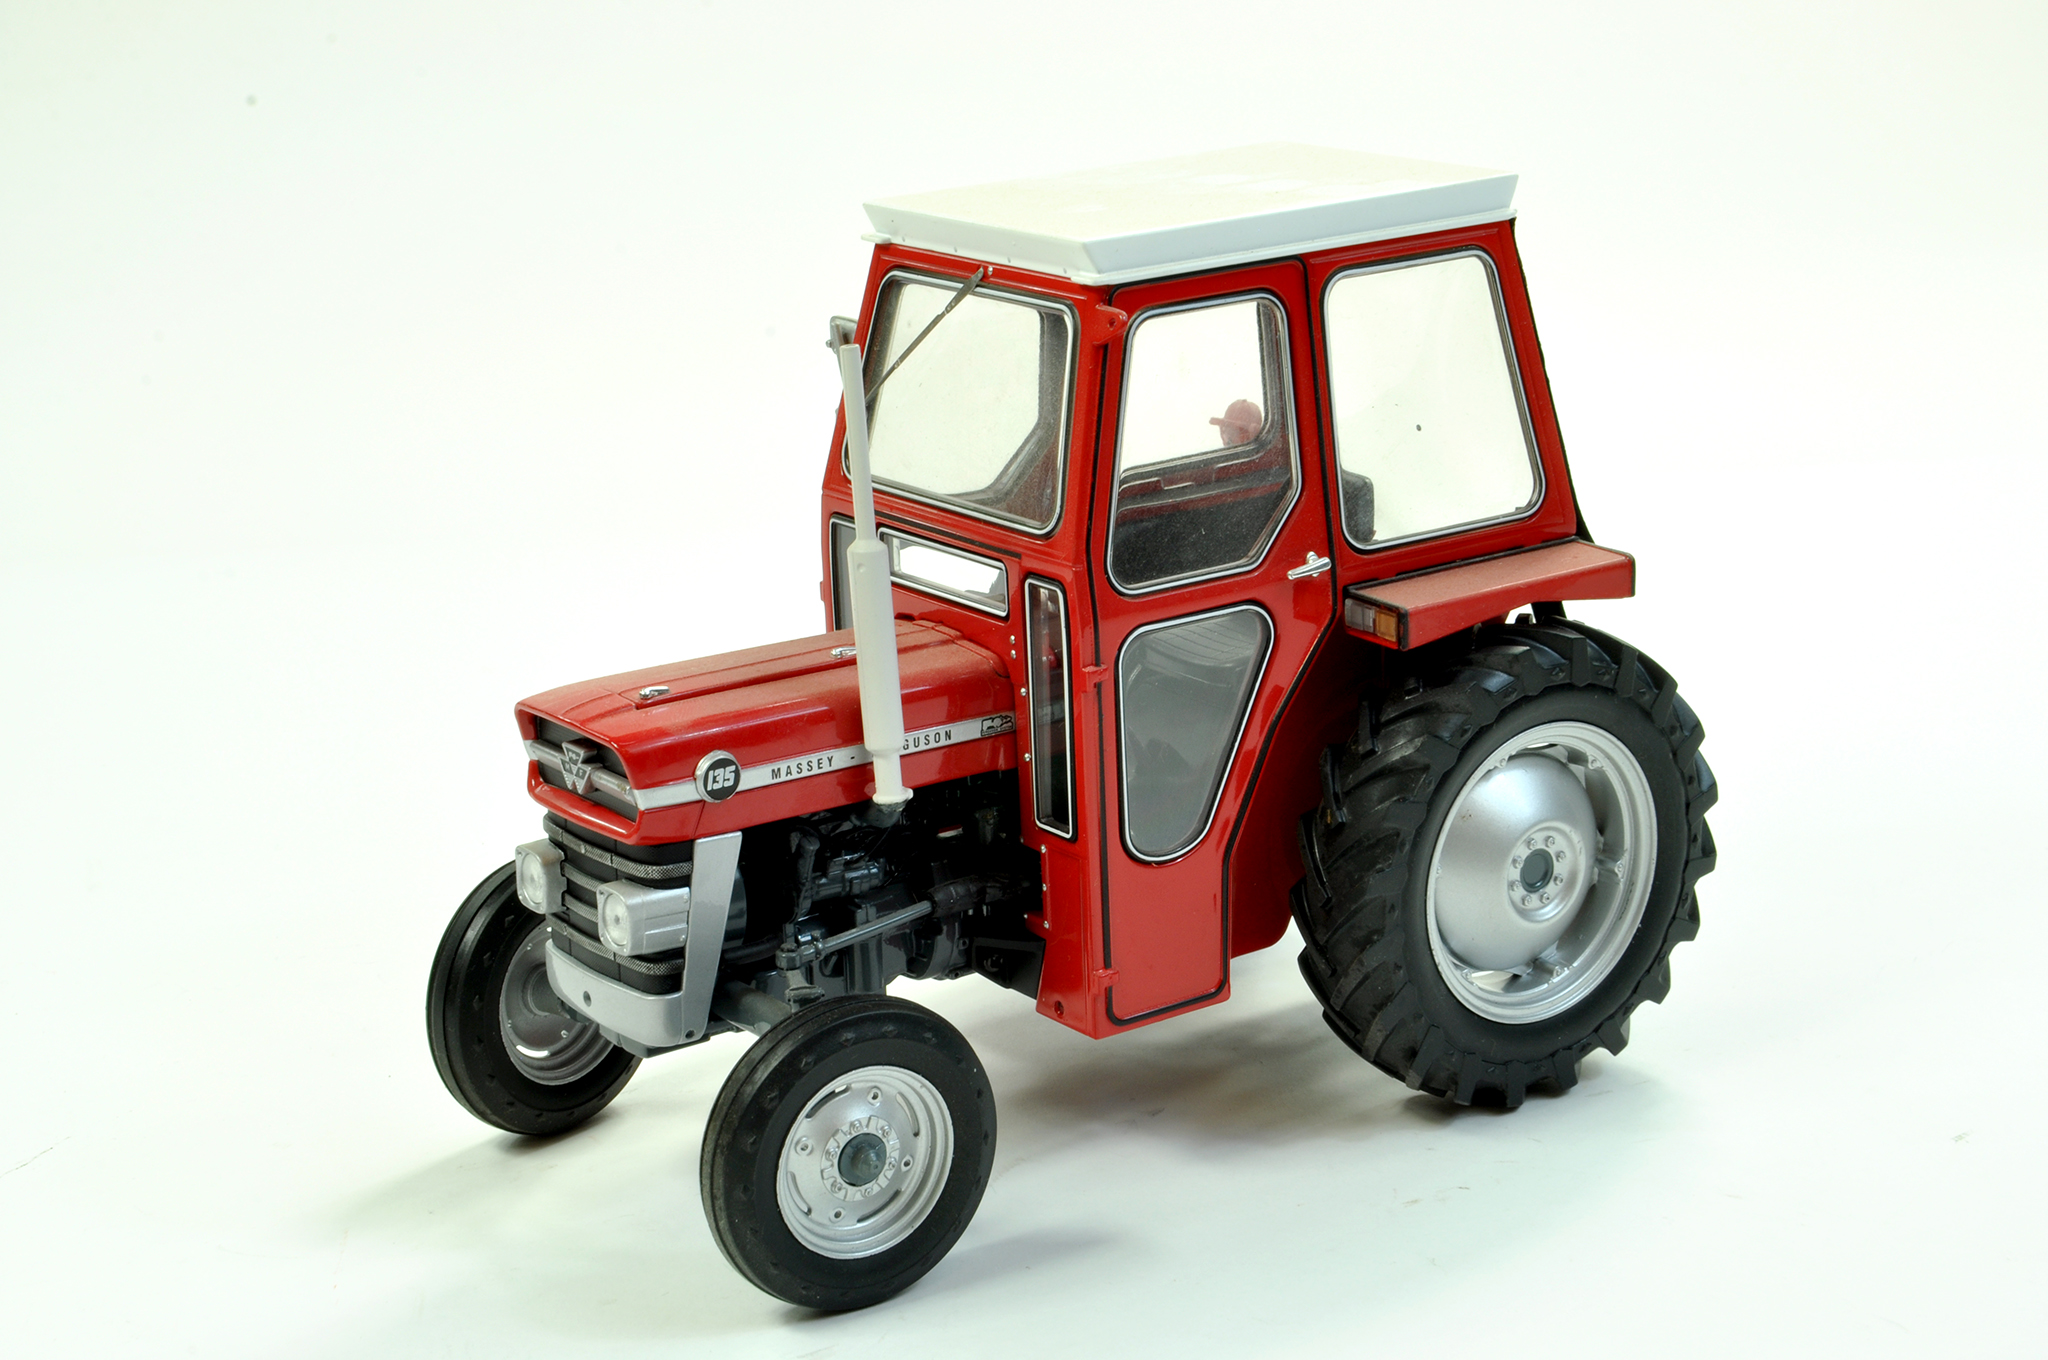 Lot 41 - Universal Hobbies 1/16 diecast farm issue comprising Massey Ferguson 135 Tractor with Cab. A